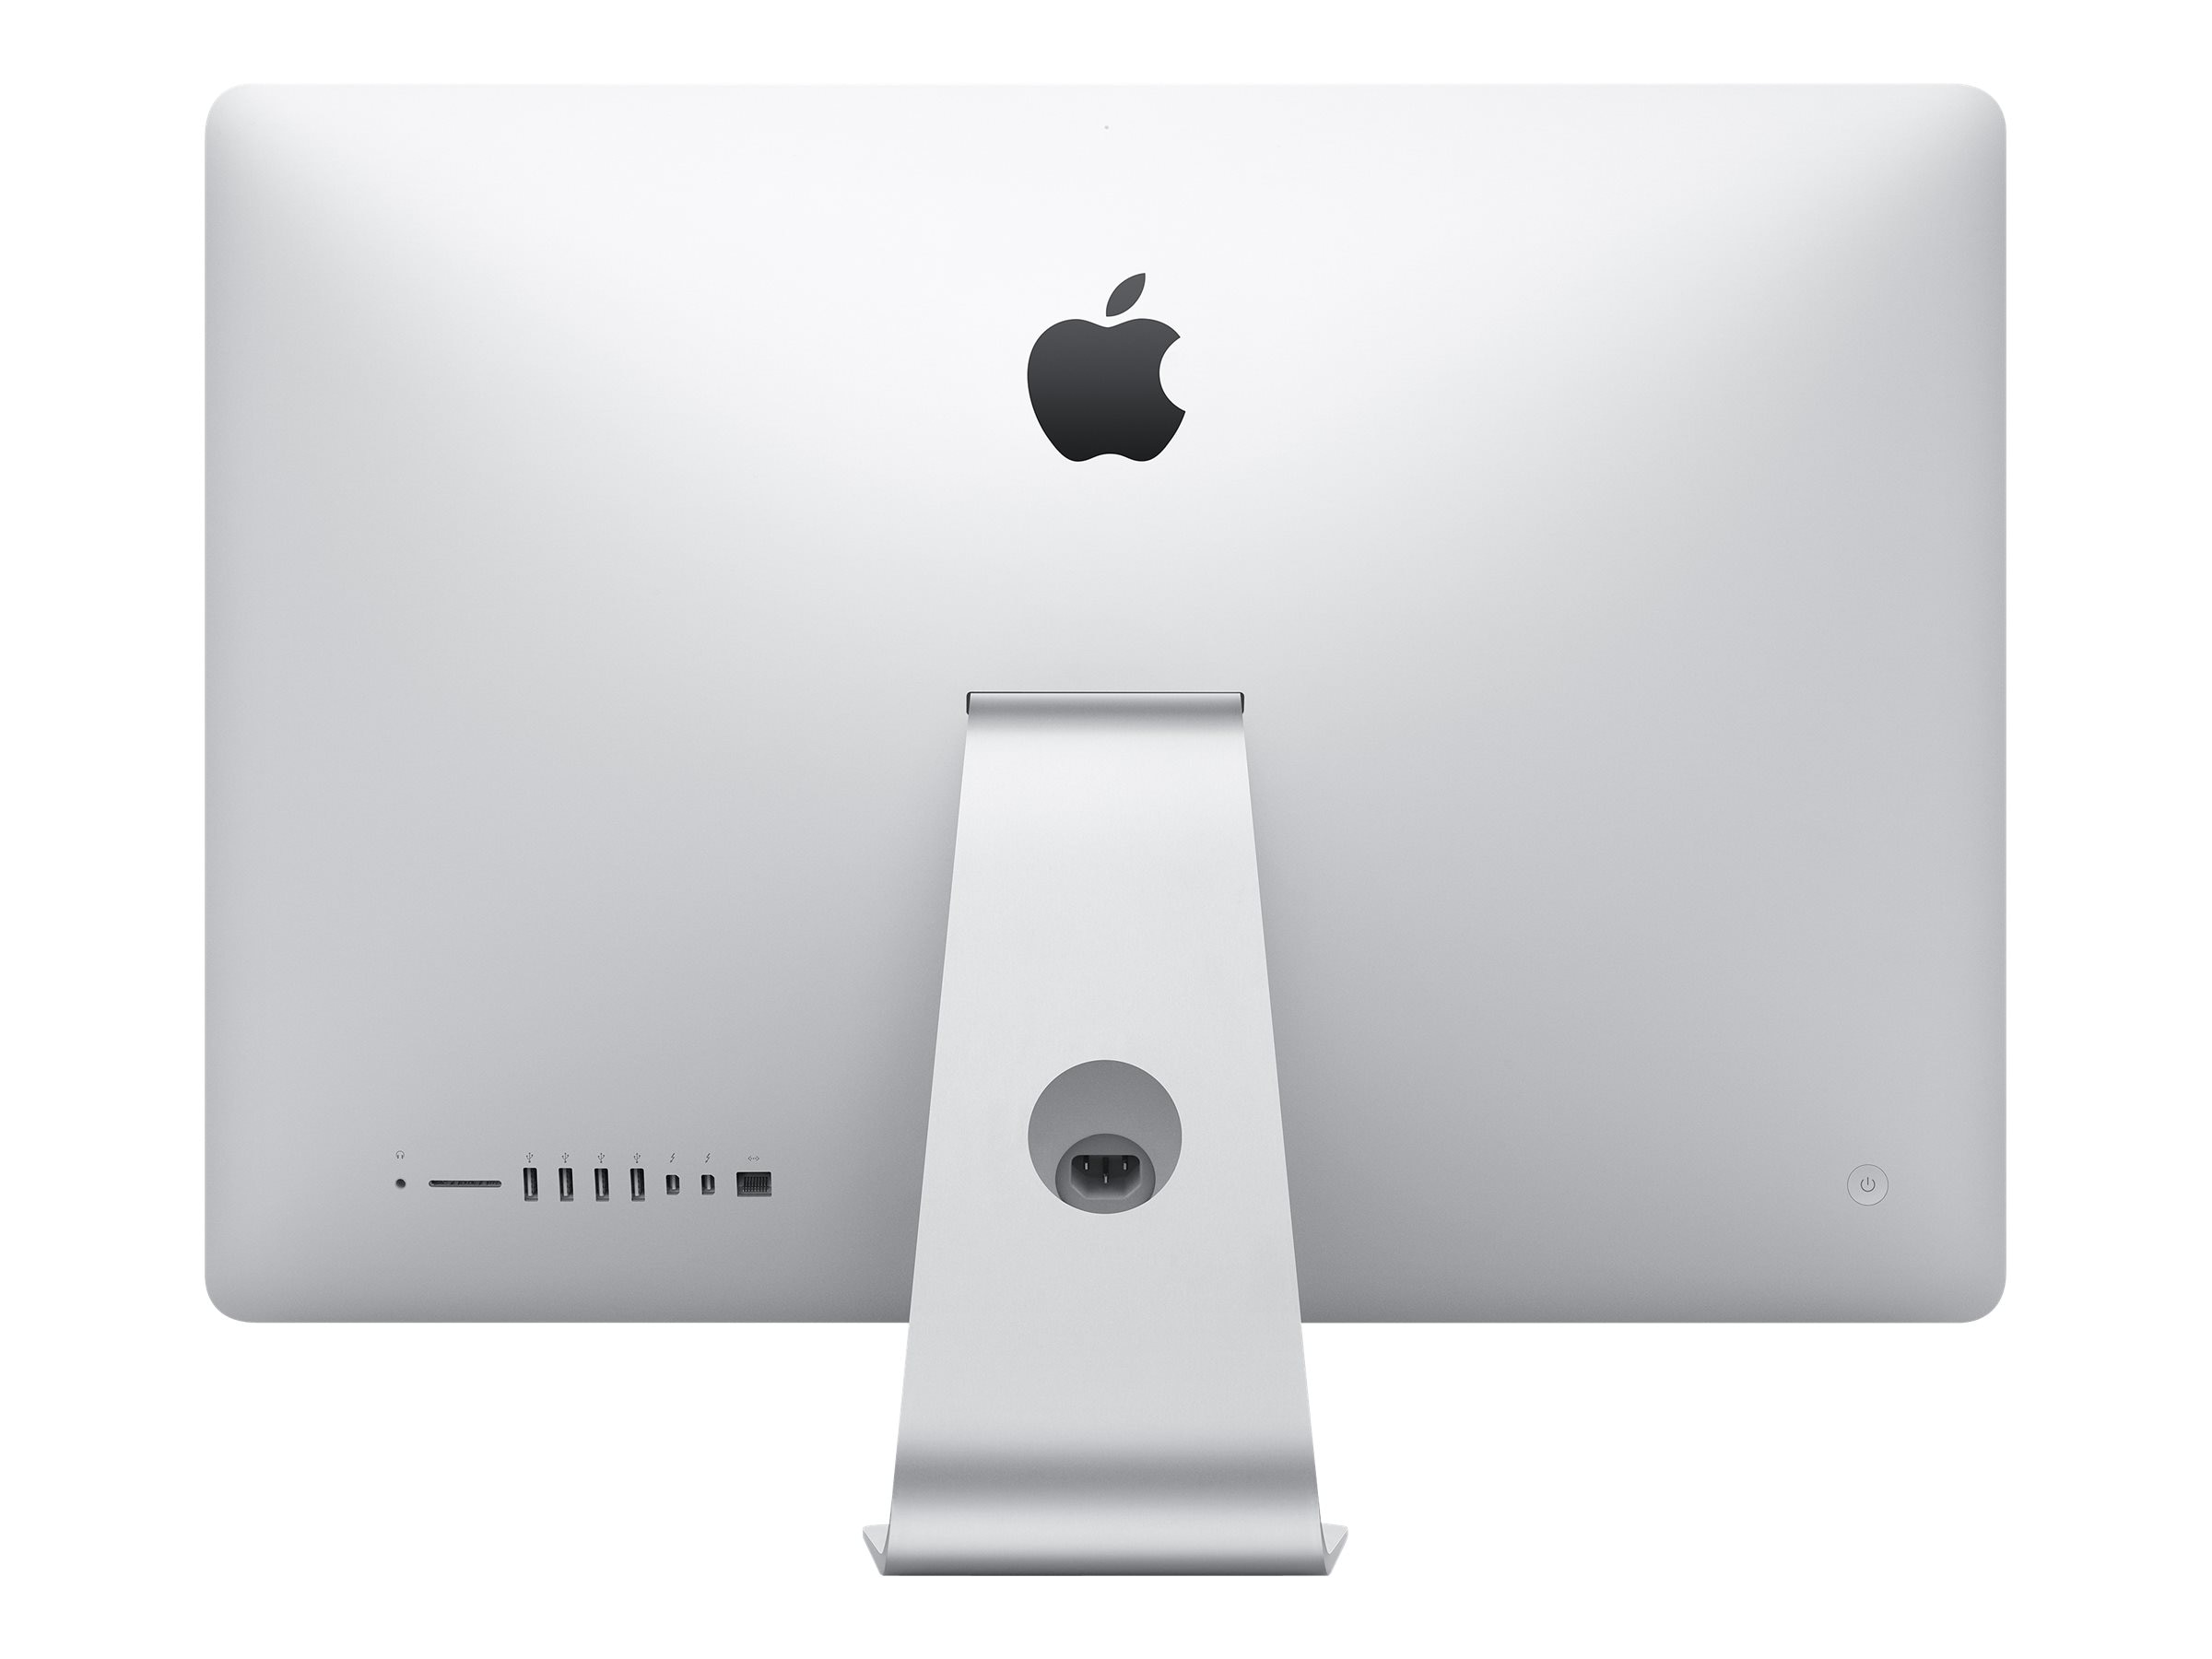 Apple iMac 21.5 QC 2.8GHz Core i5 8GB 1TB(5400) Iris Pro 6200 MagicKeyboard MagicMouse2, MK442LL/A